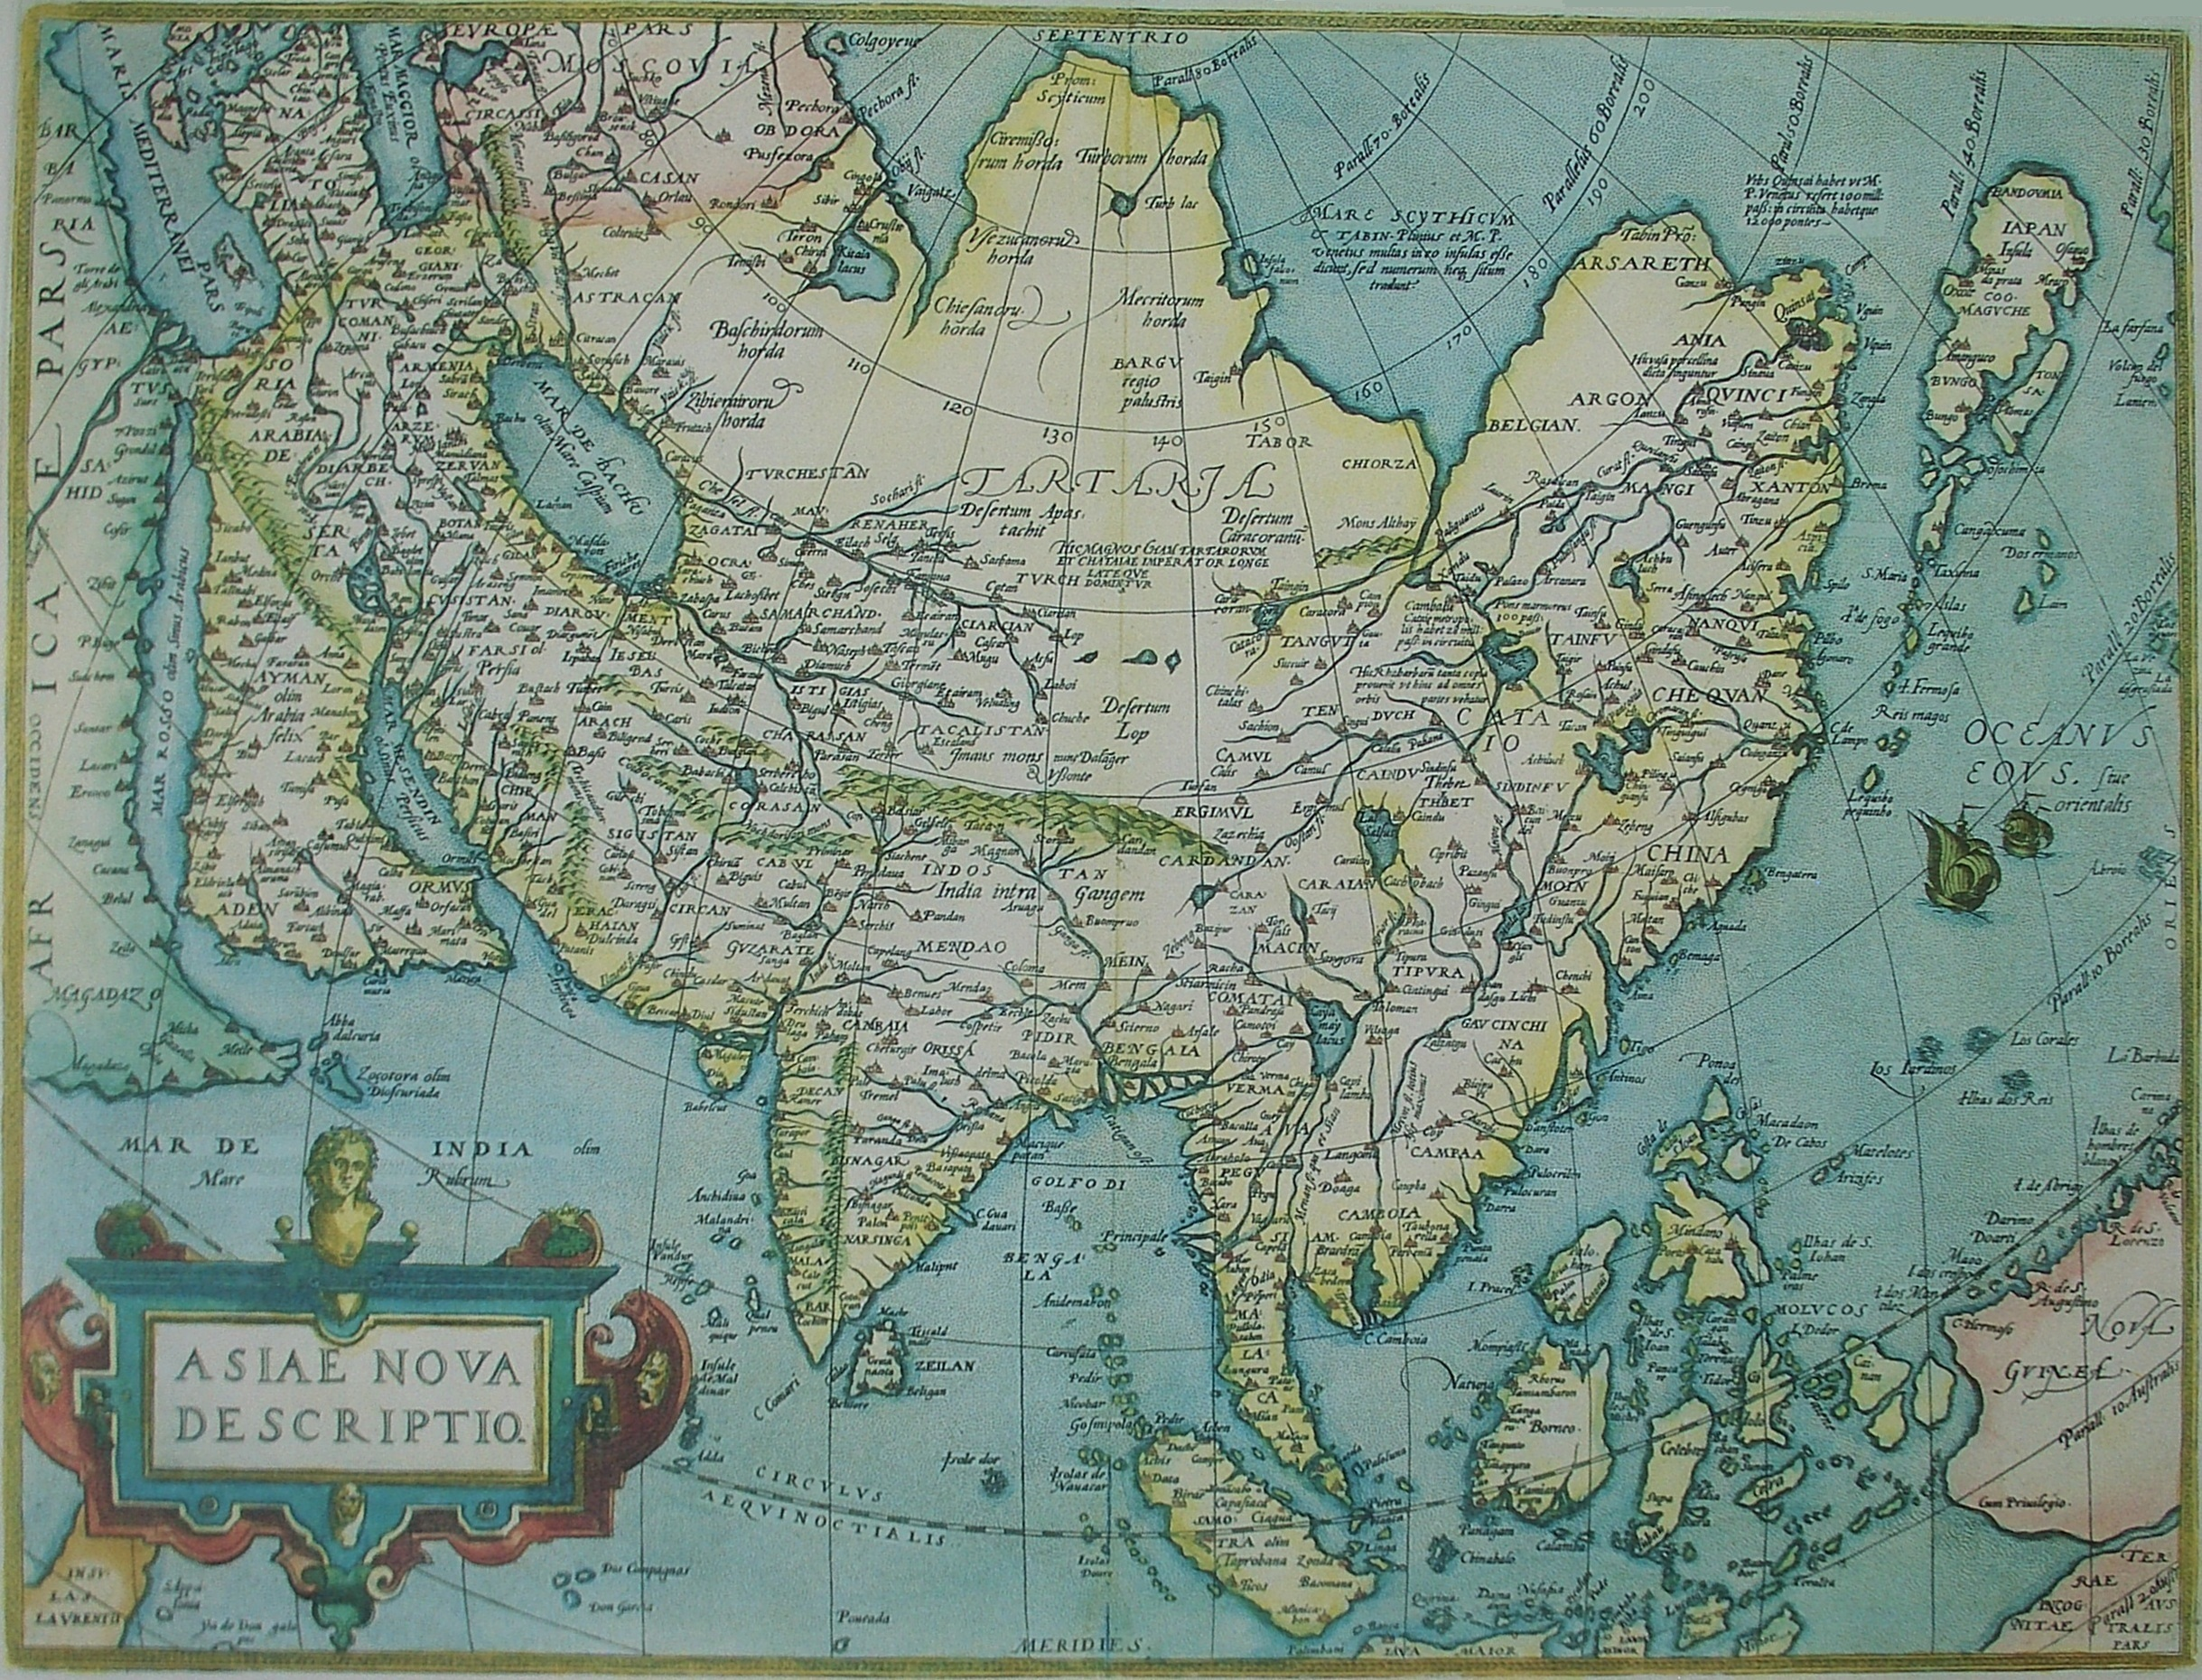 Map, Asiae Nova Descriptio (Asia, New Description) produced in 1570 by Abraham Ortelius (Hong_Kong_University)